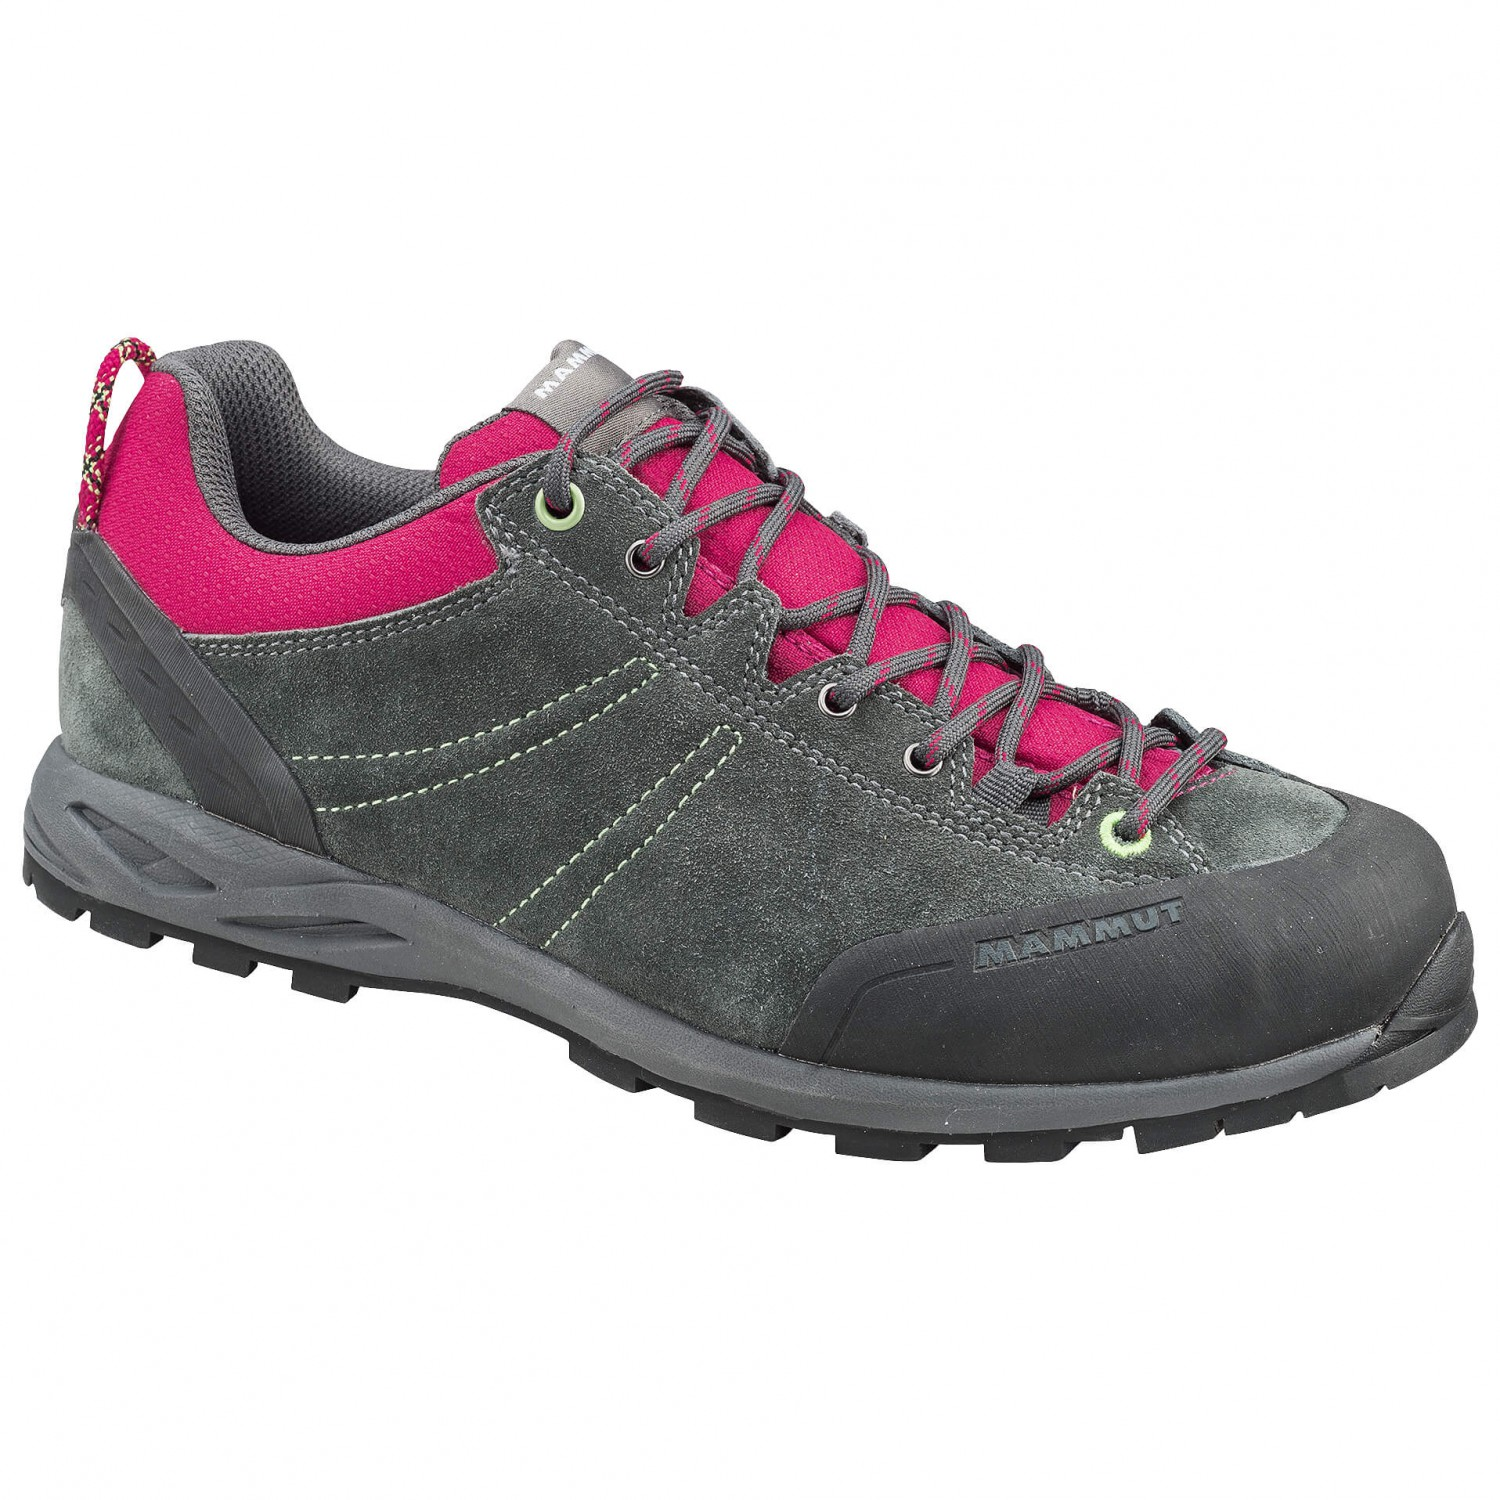 Mammut - Wall Low Women - Multisportschuhe Graphite / Magenta